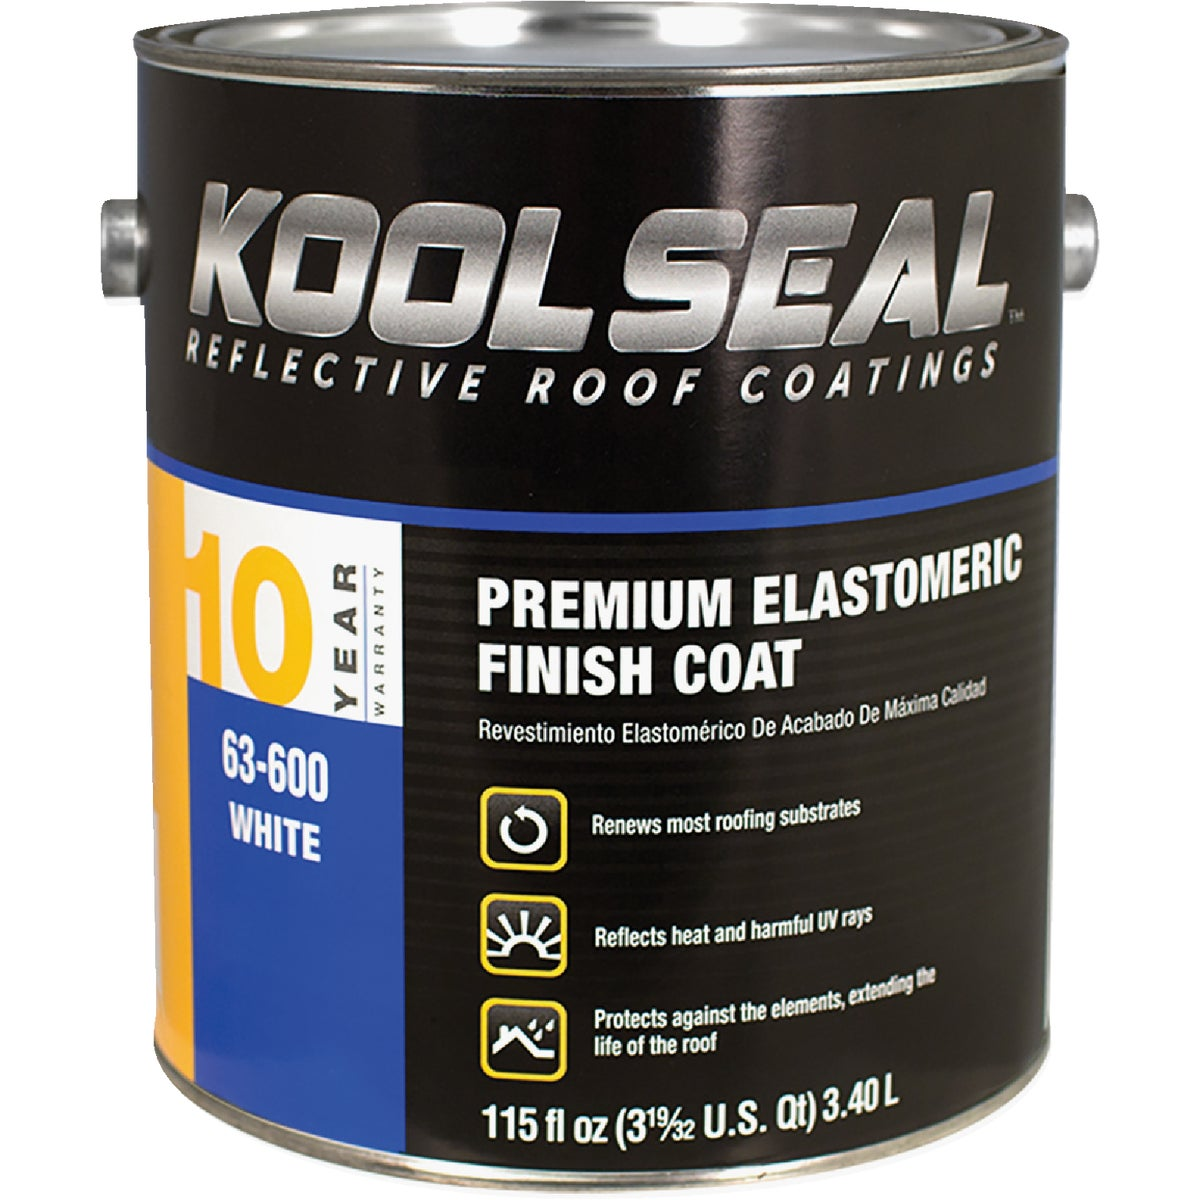 GAL ELSTOMRC RF COATING - 63-600-1 by Kool Seal